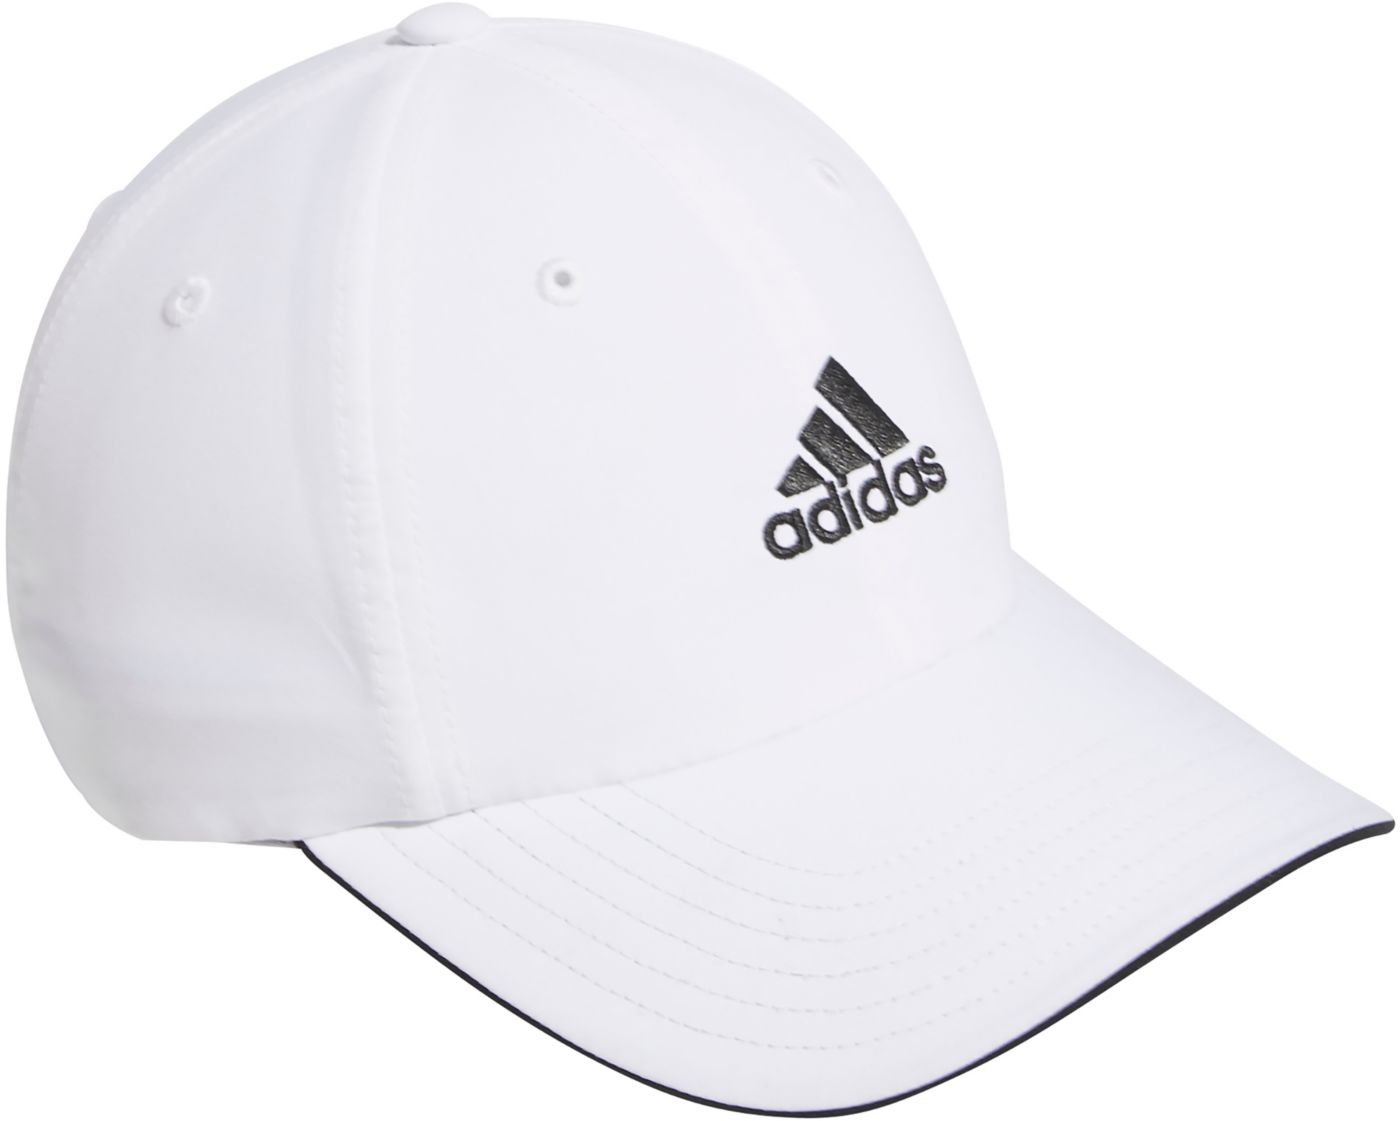 adidas Youth Badge of Sport Performance Golf Hat